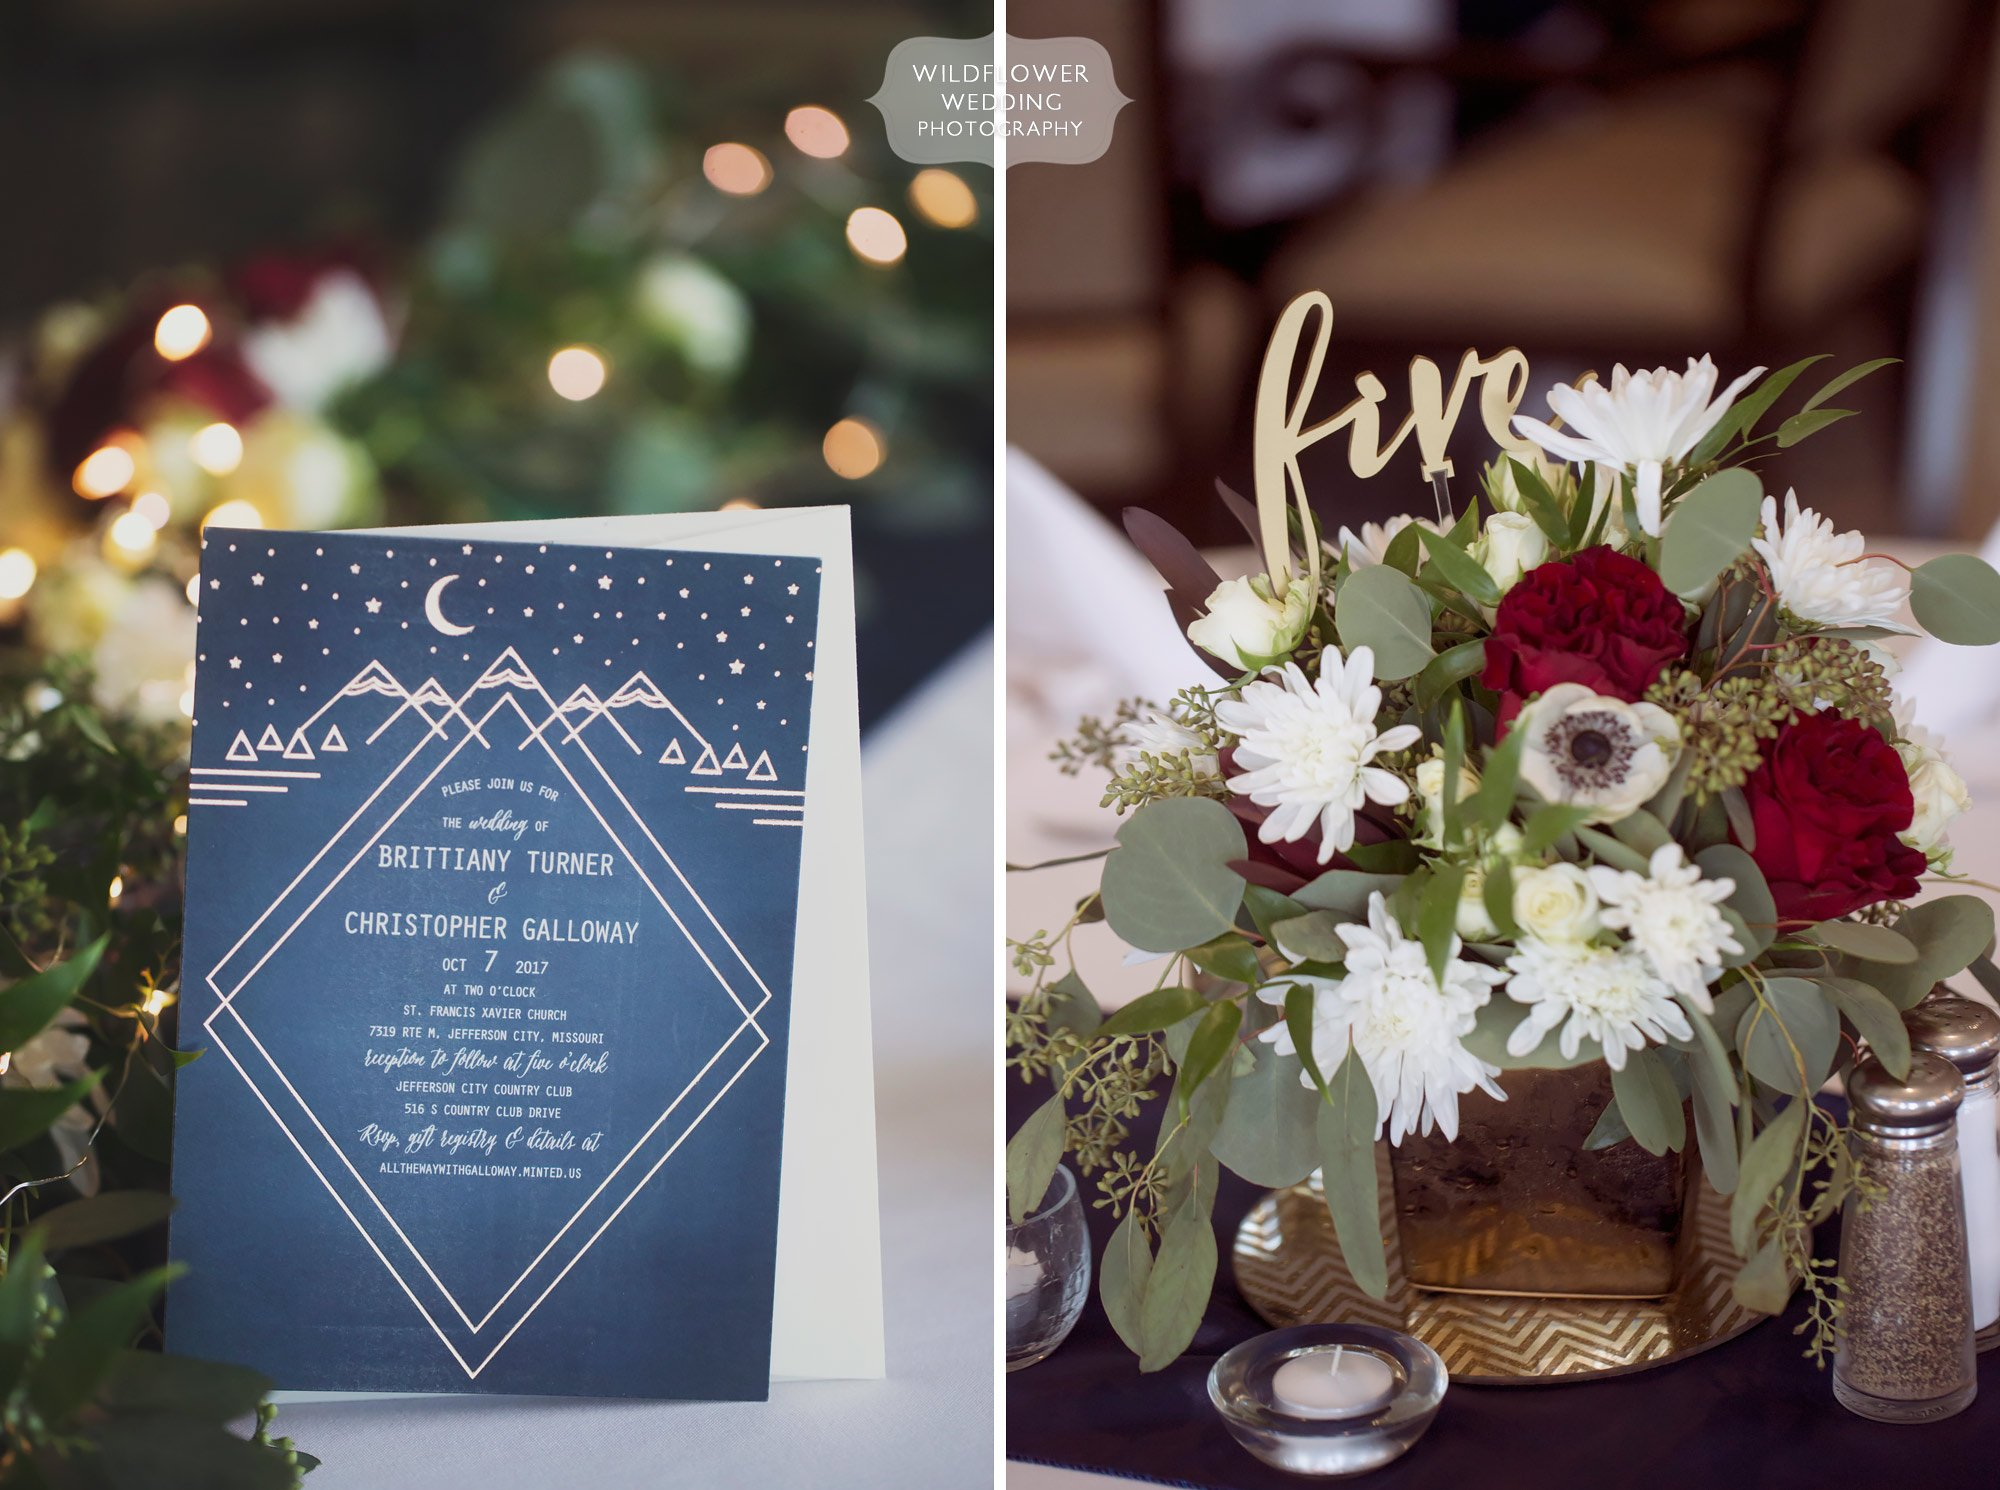 Celestial wedding invitations at the Jefferson City Country Club.